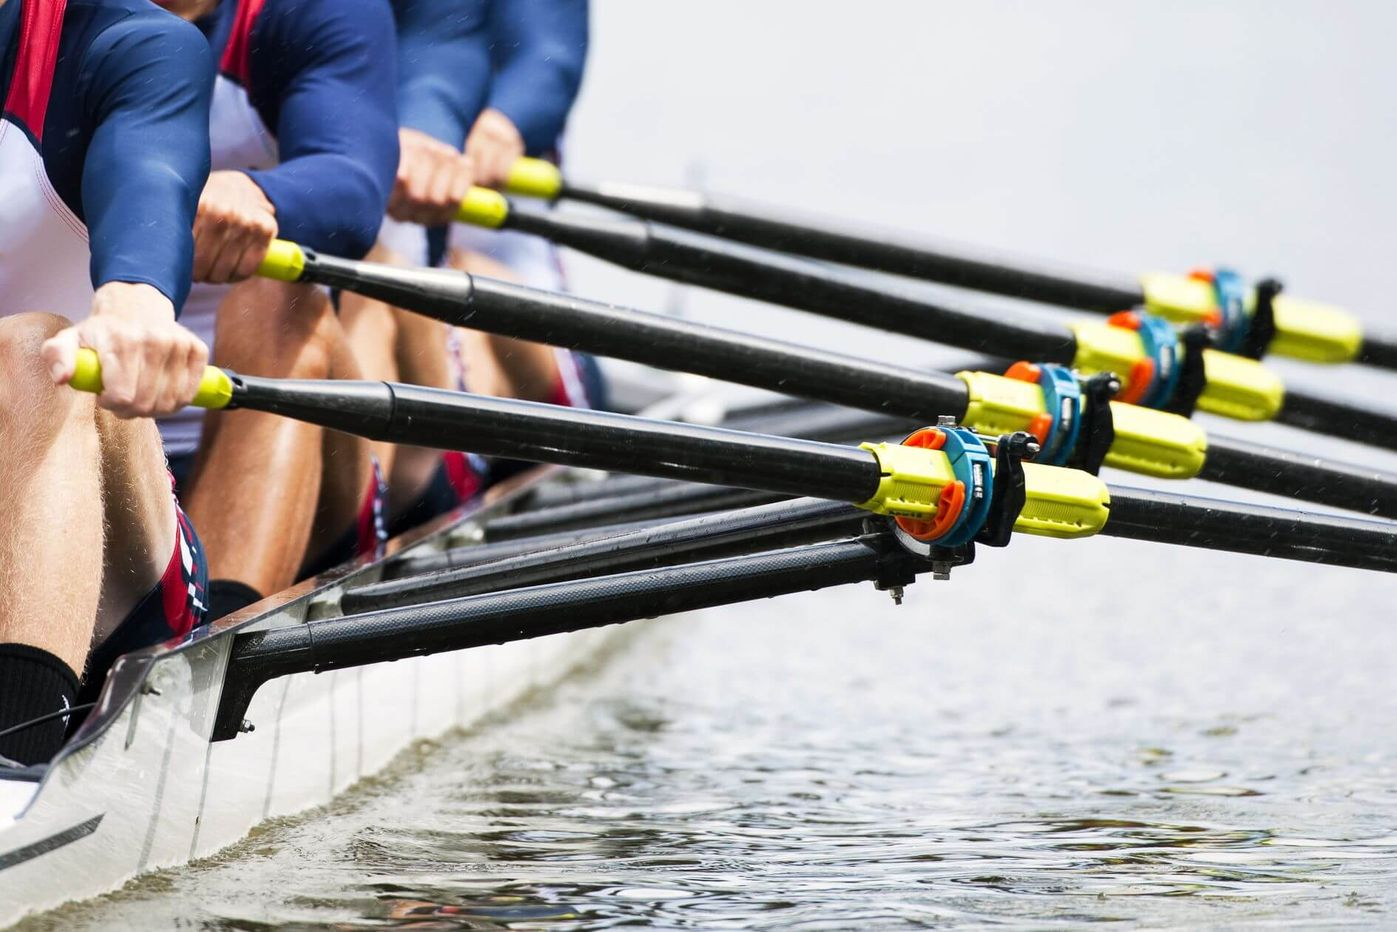 A team of rowers moving in sync [Unioncrate]